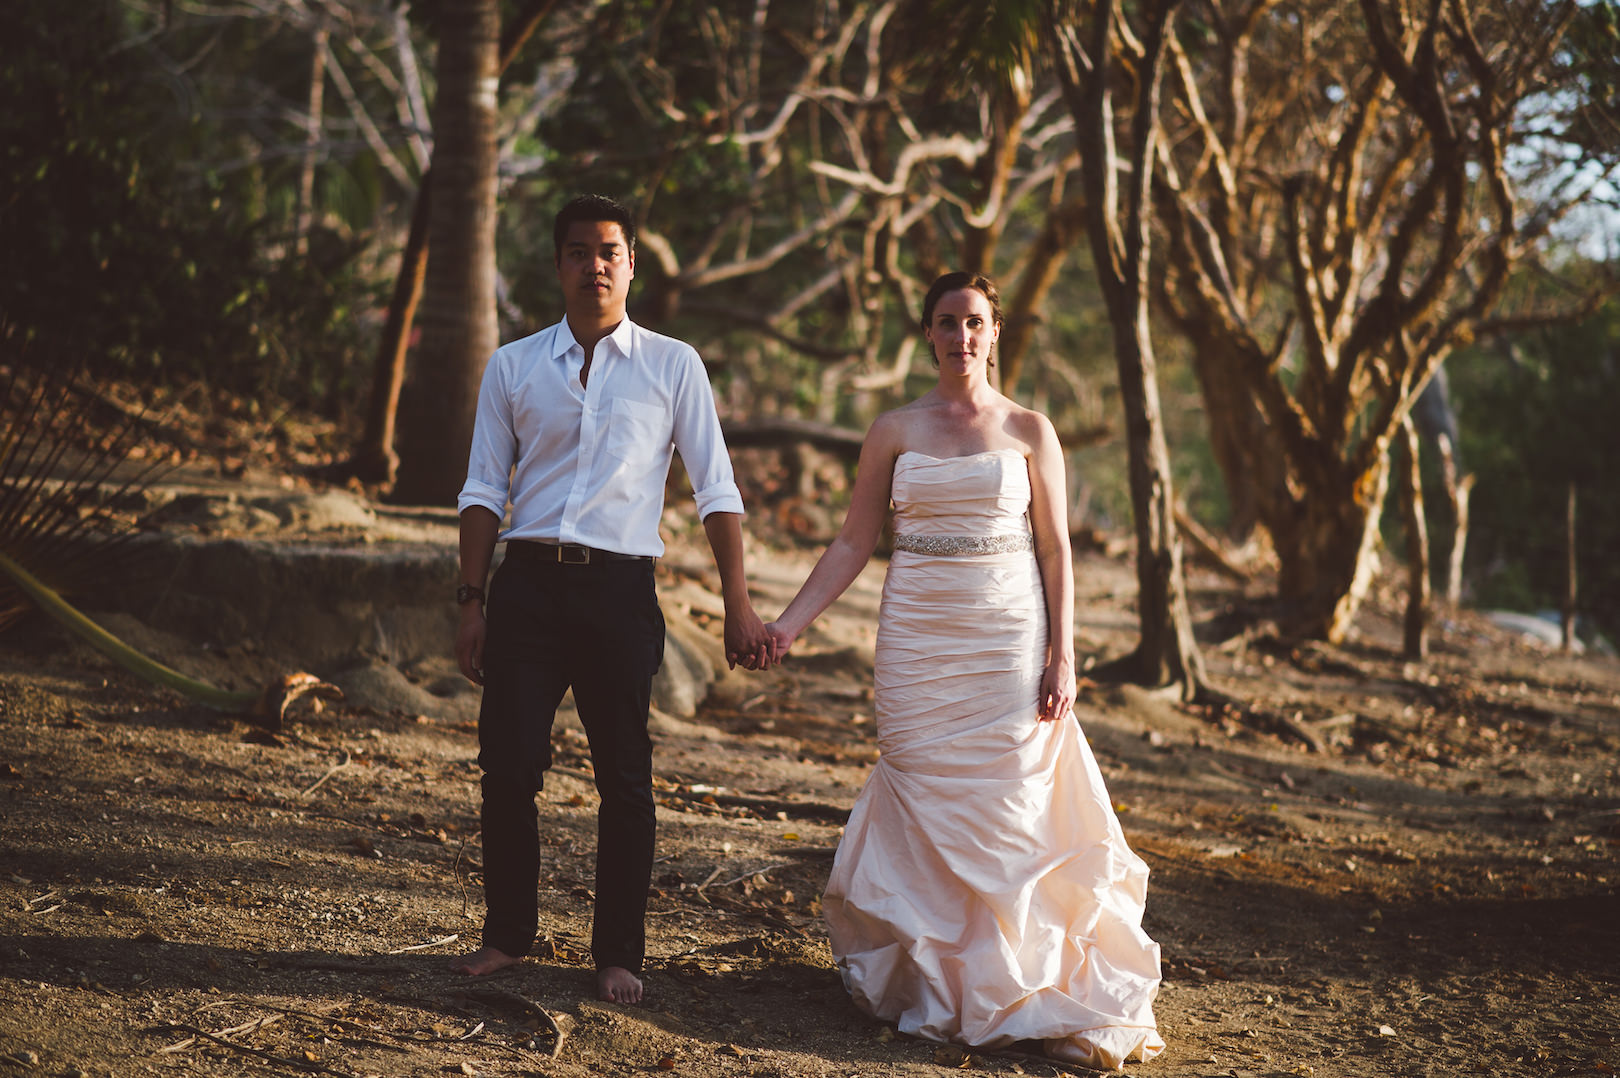 Steve & Mika - Sayulita - © Dallas Kolotylo Photography - 813